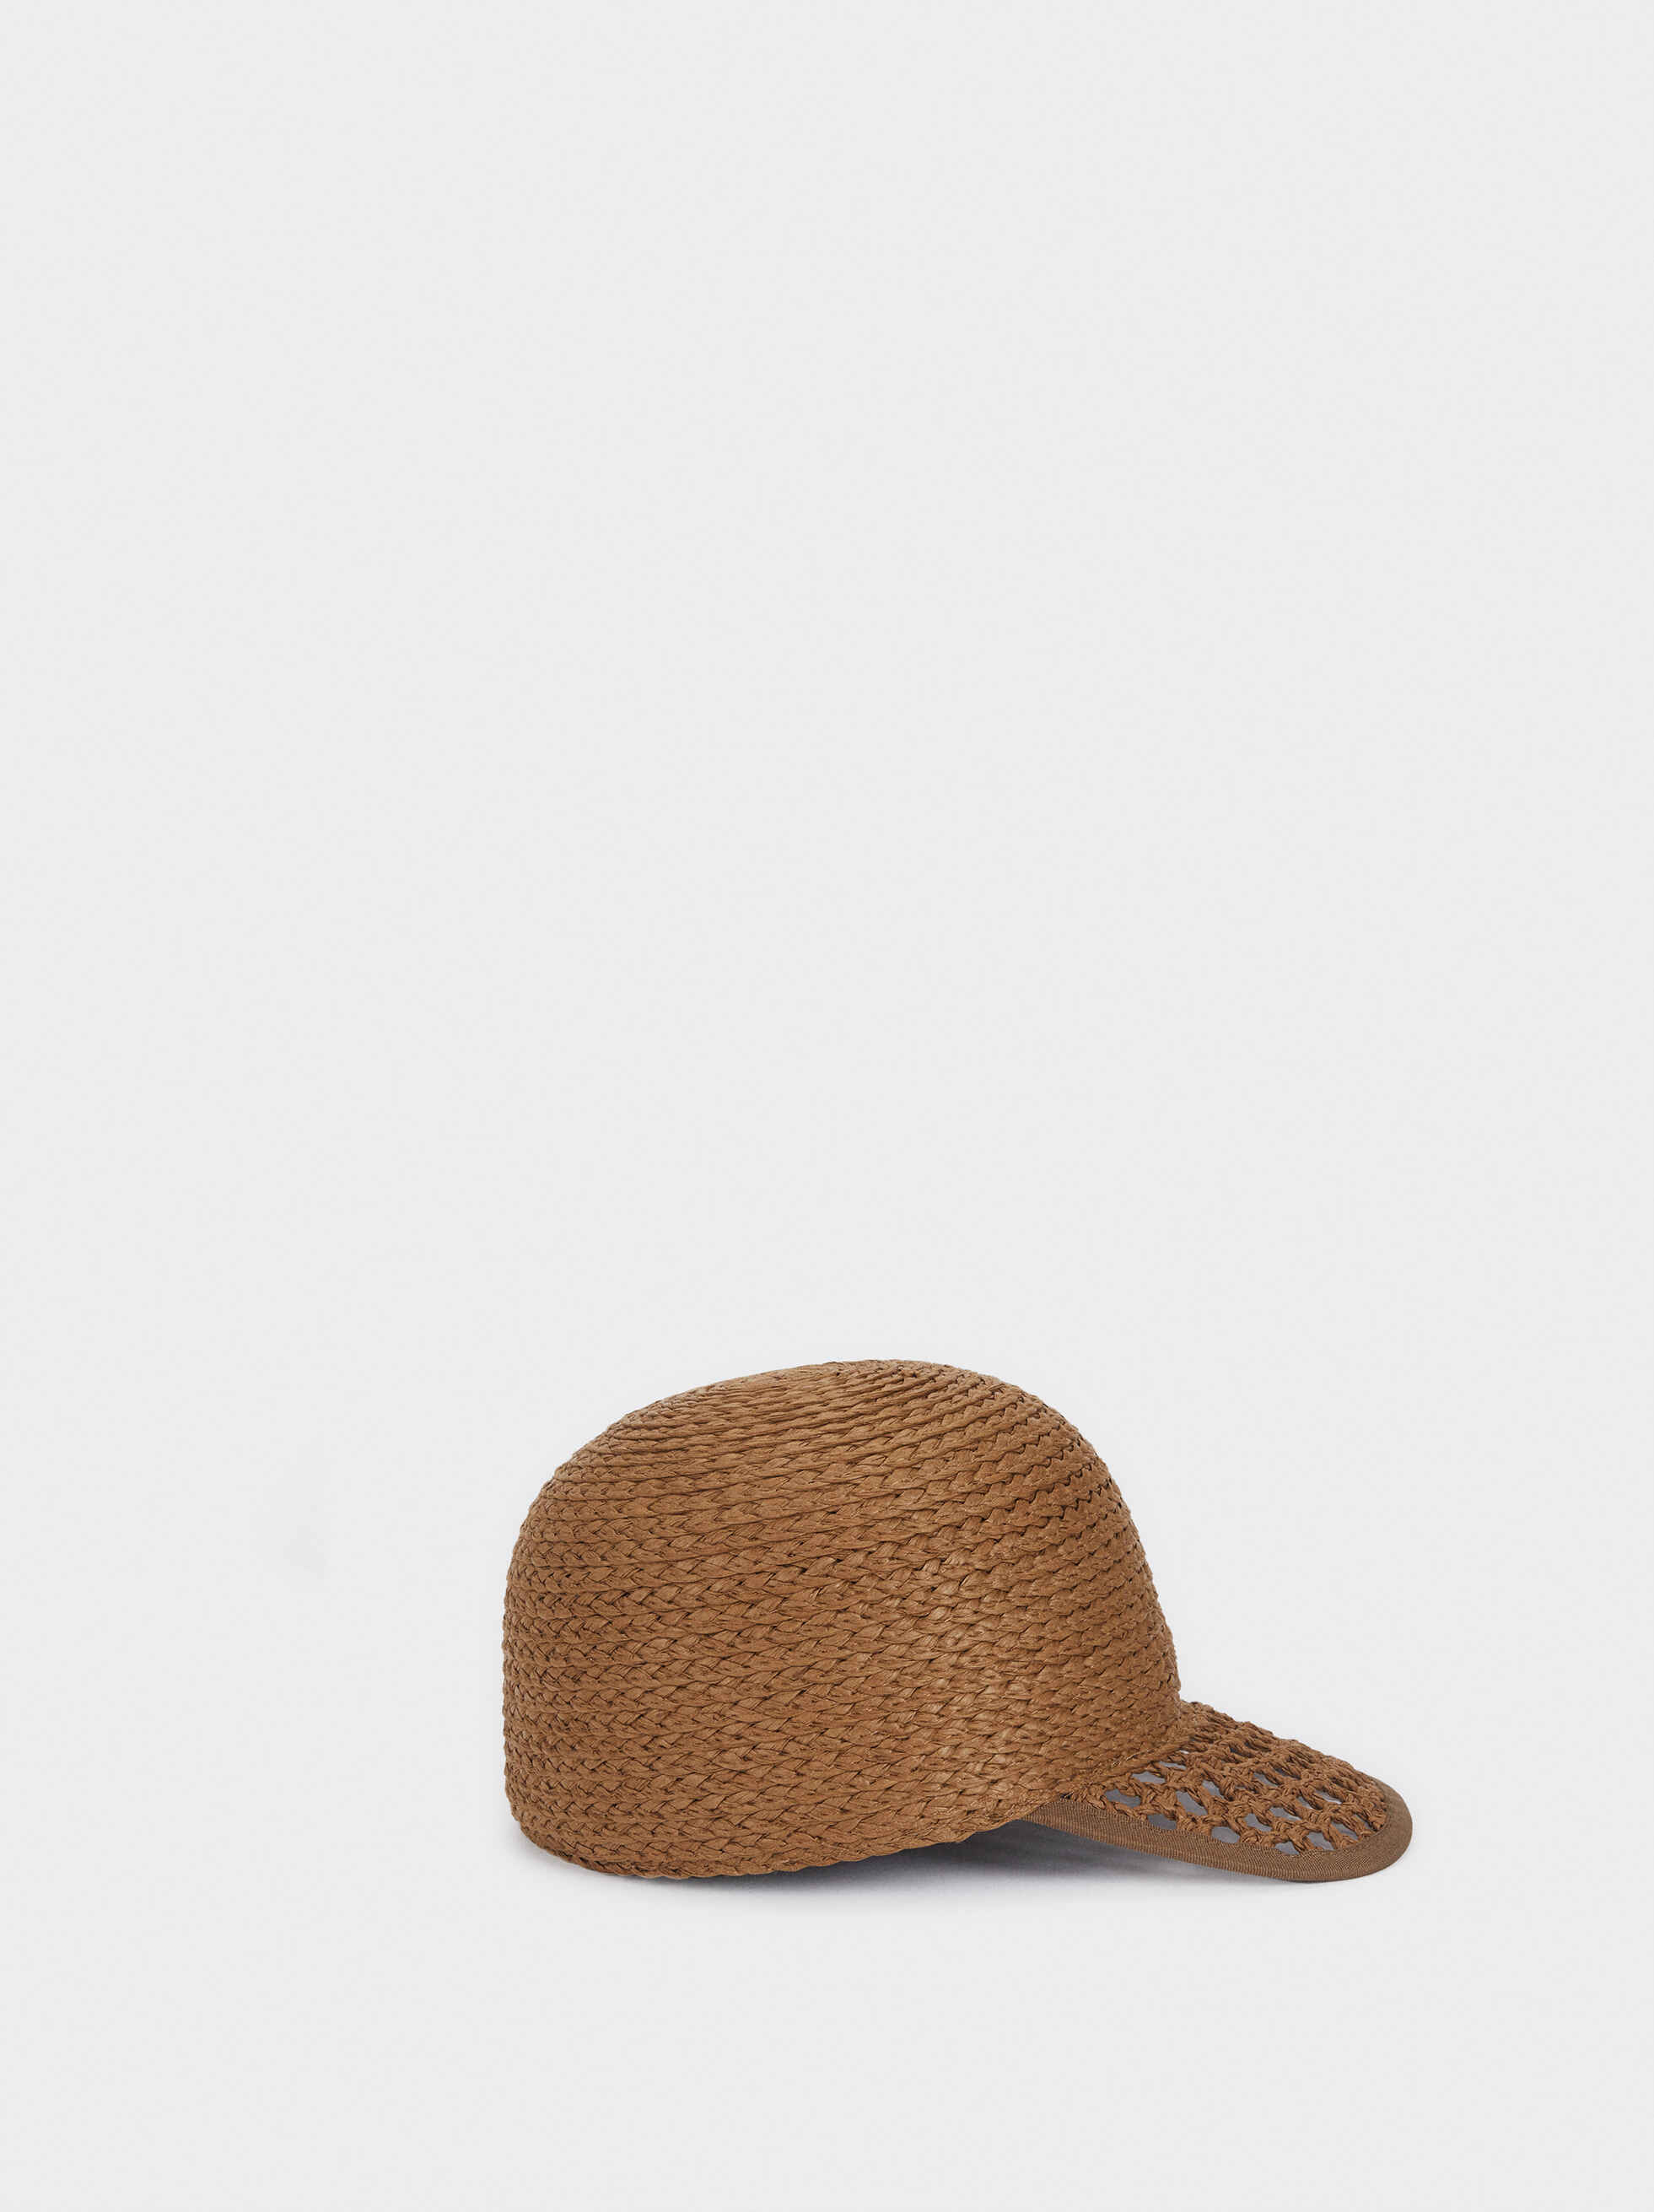 Straw Cap With Braided Peak, Khaki, hi-res